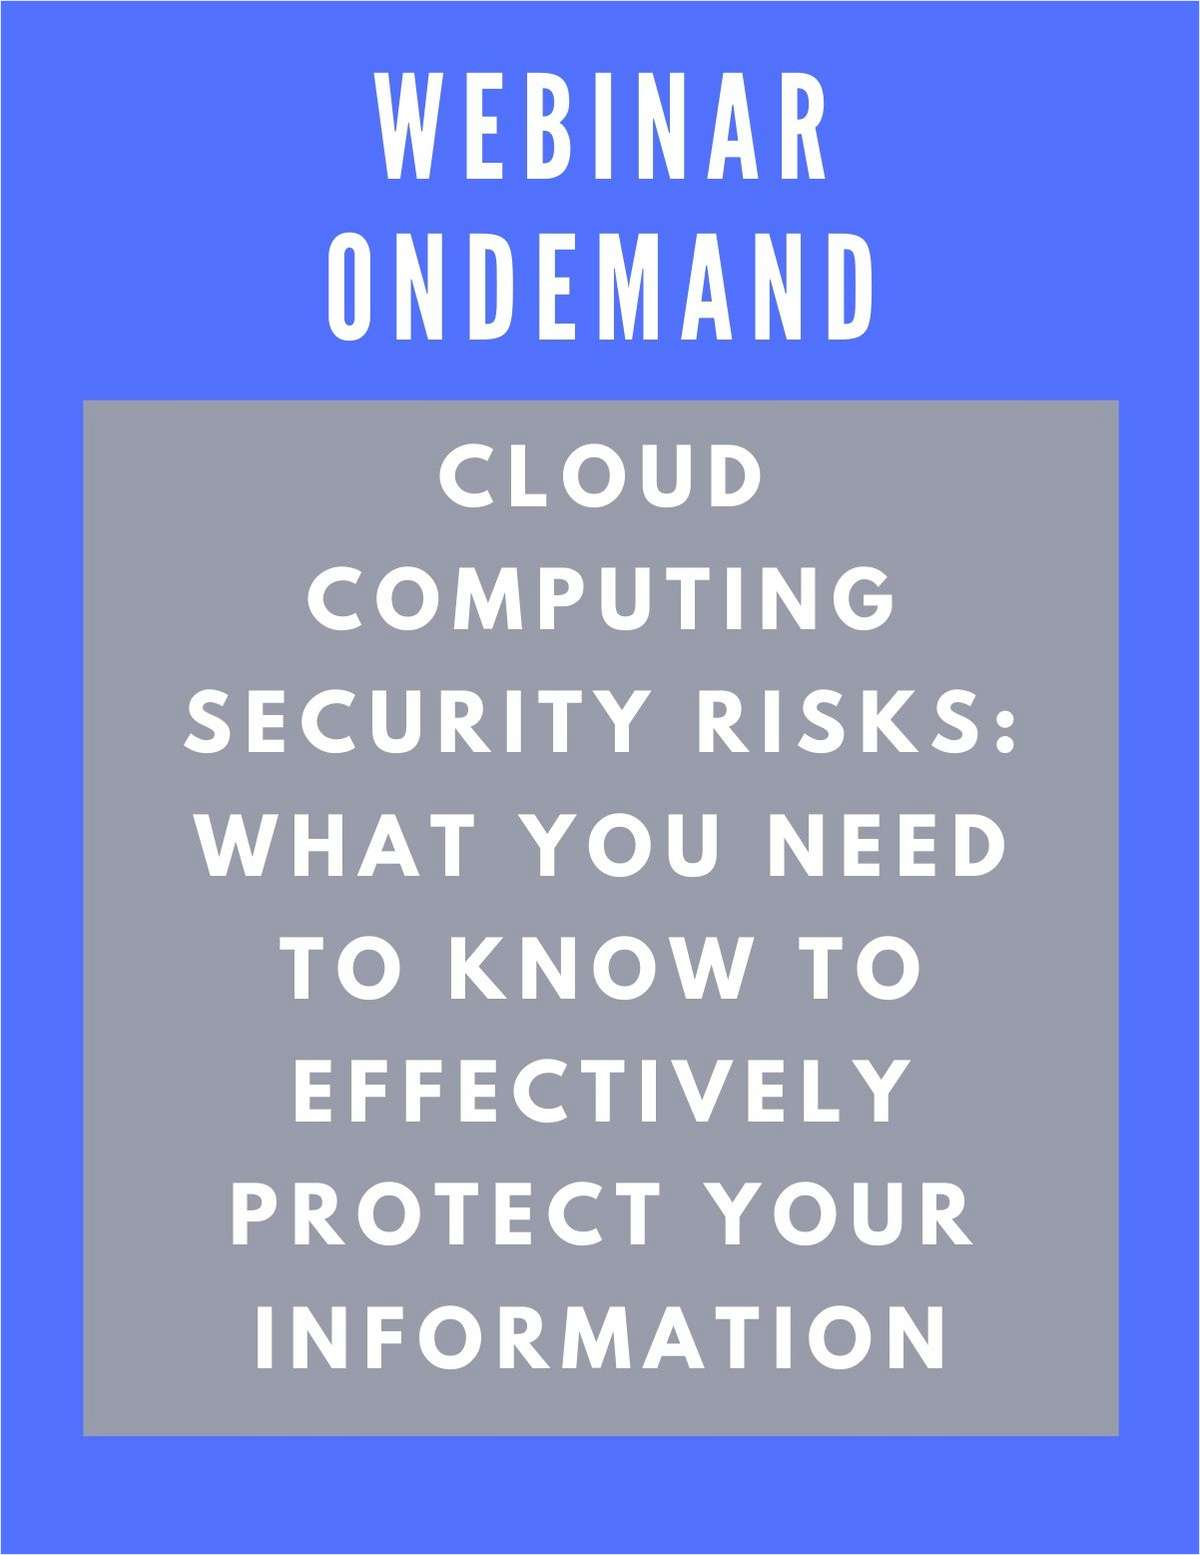 Cloud Computing Security Risks: What you Need to Know to Effectively Protect Your Information